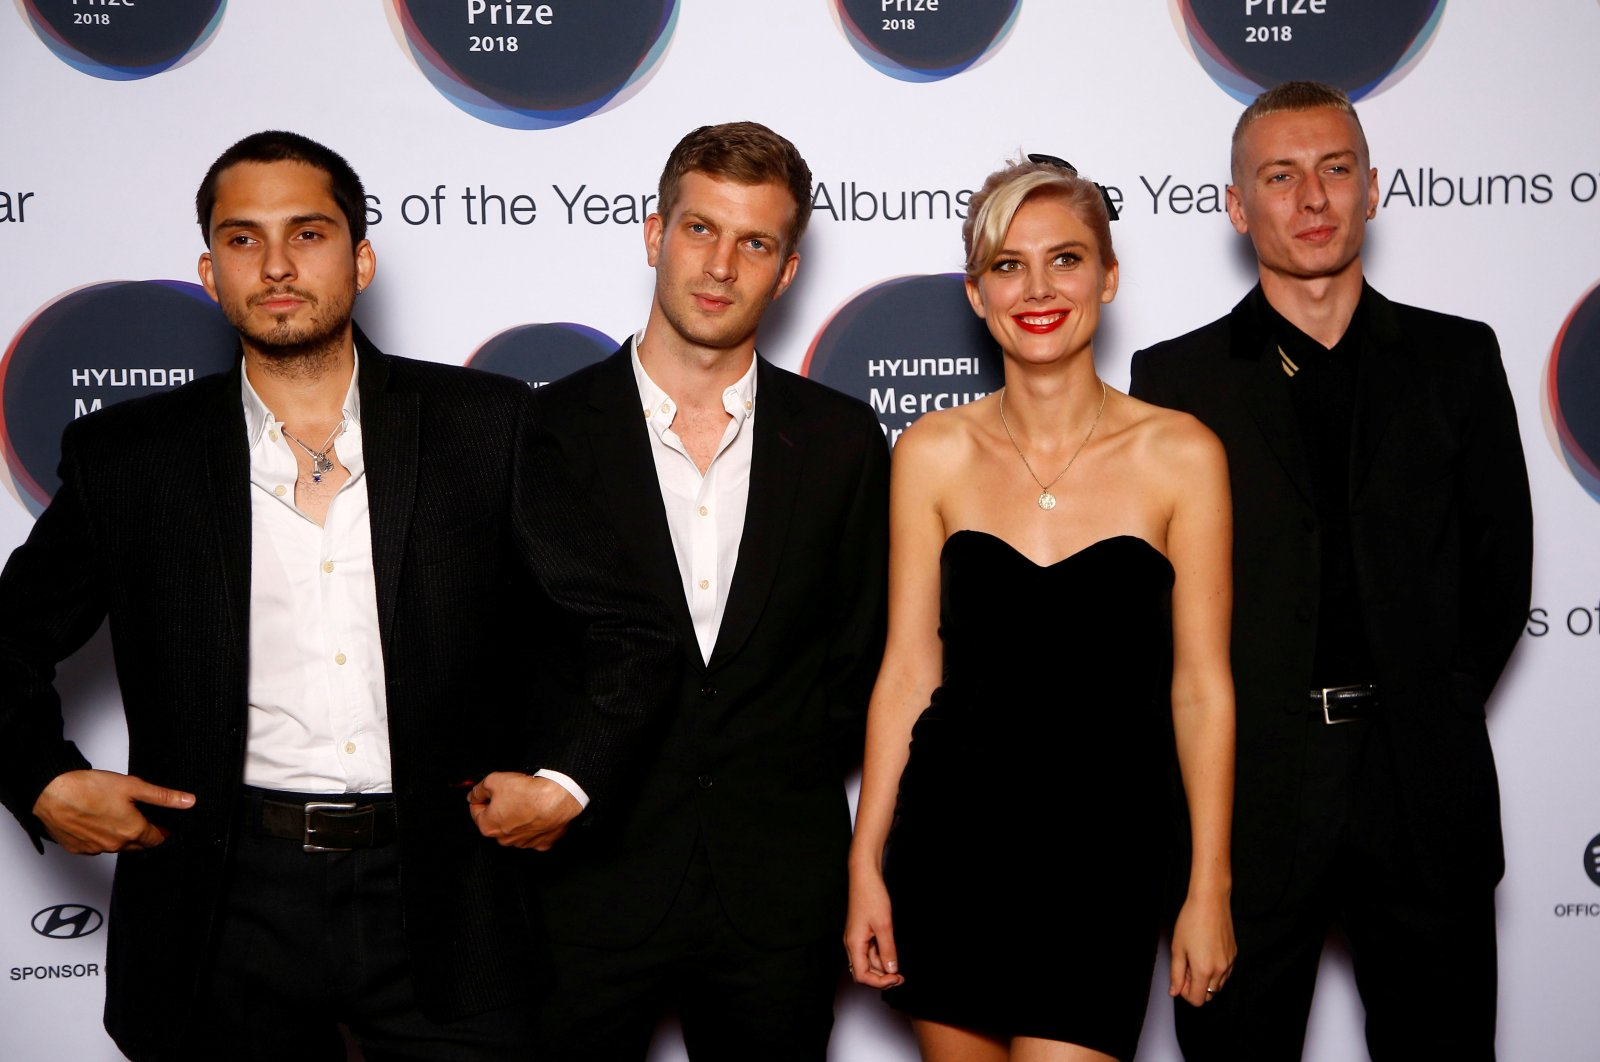 """Musicians from Wolf Alice, whose album """"Visions of a Life"""" had been nominated for the Mercury Prize 2018, pose for a photograph ahead of the ceremony at the Hammersmith Apollo in London, U.K., September 20, 2018. (REUTERS Photo)"""